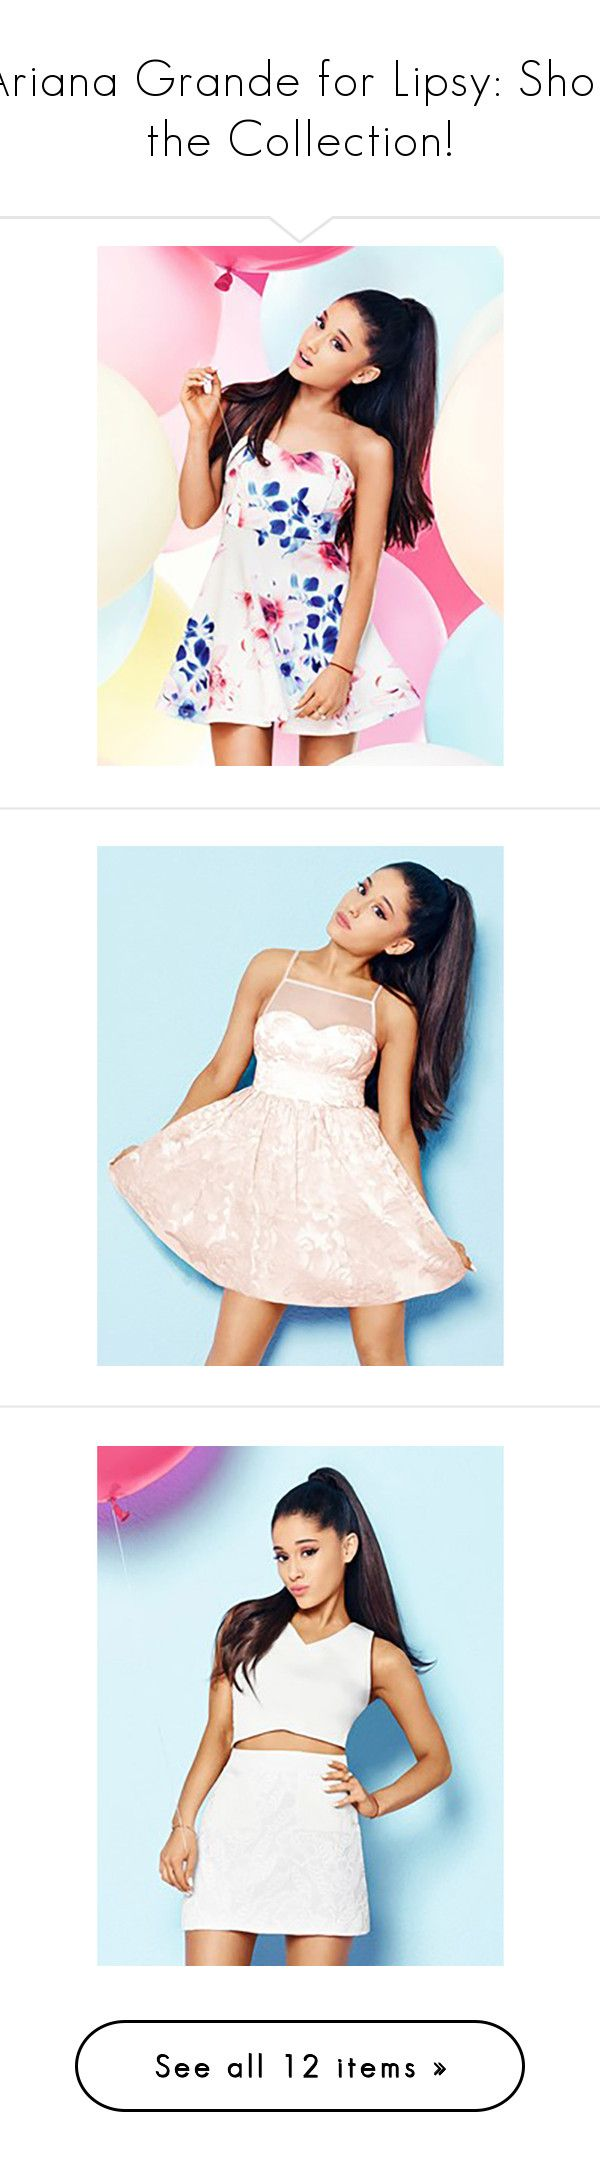 """""""Ariana Grande for Lipsy: Shop the Collection!"""" by polyvore-editorial ❤ liked on Polyvore featuring DateNight, ArianaGrande, lipsy, dresses, floral dress, floral prom dresses, prom dresses, floral print dress, flower print dress and pink dress"""